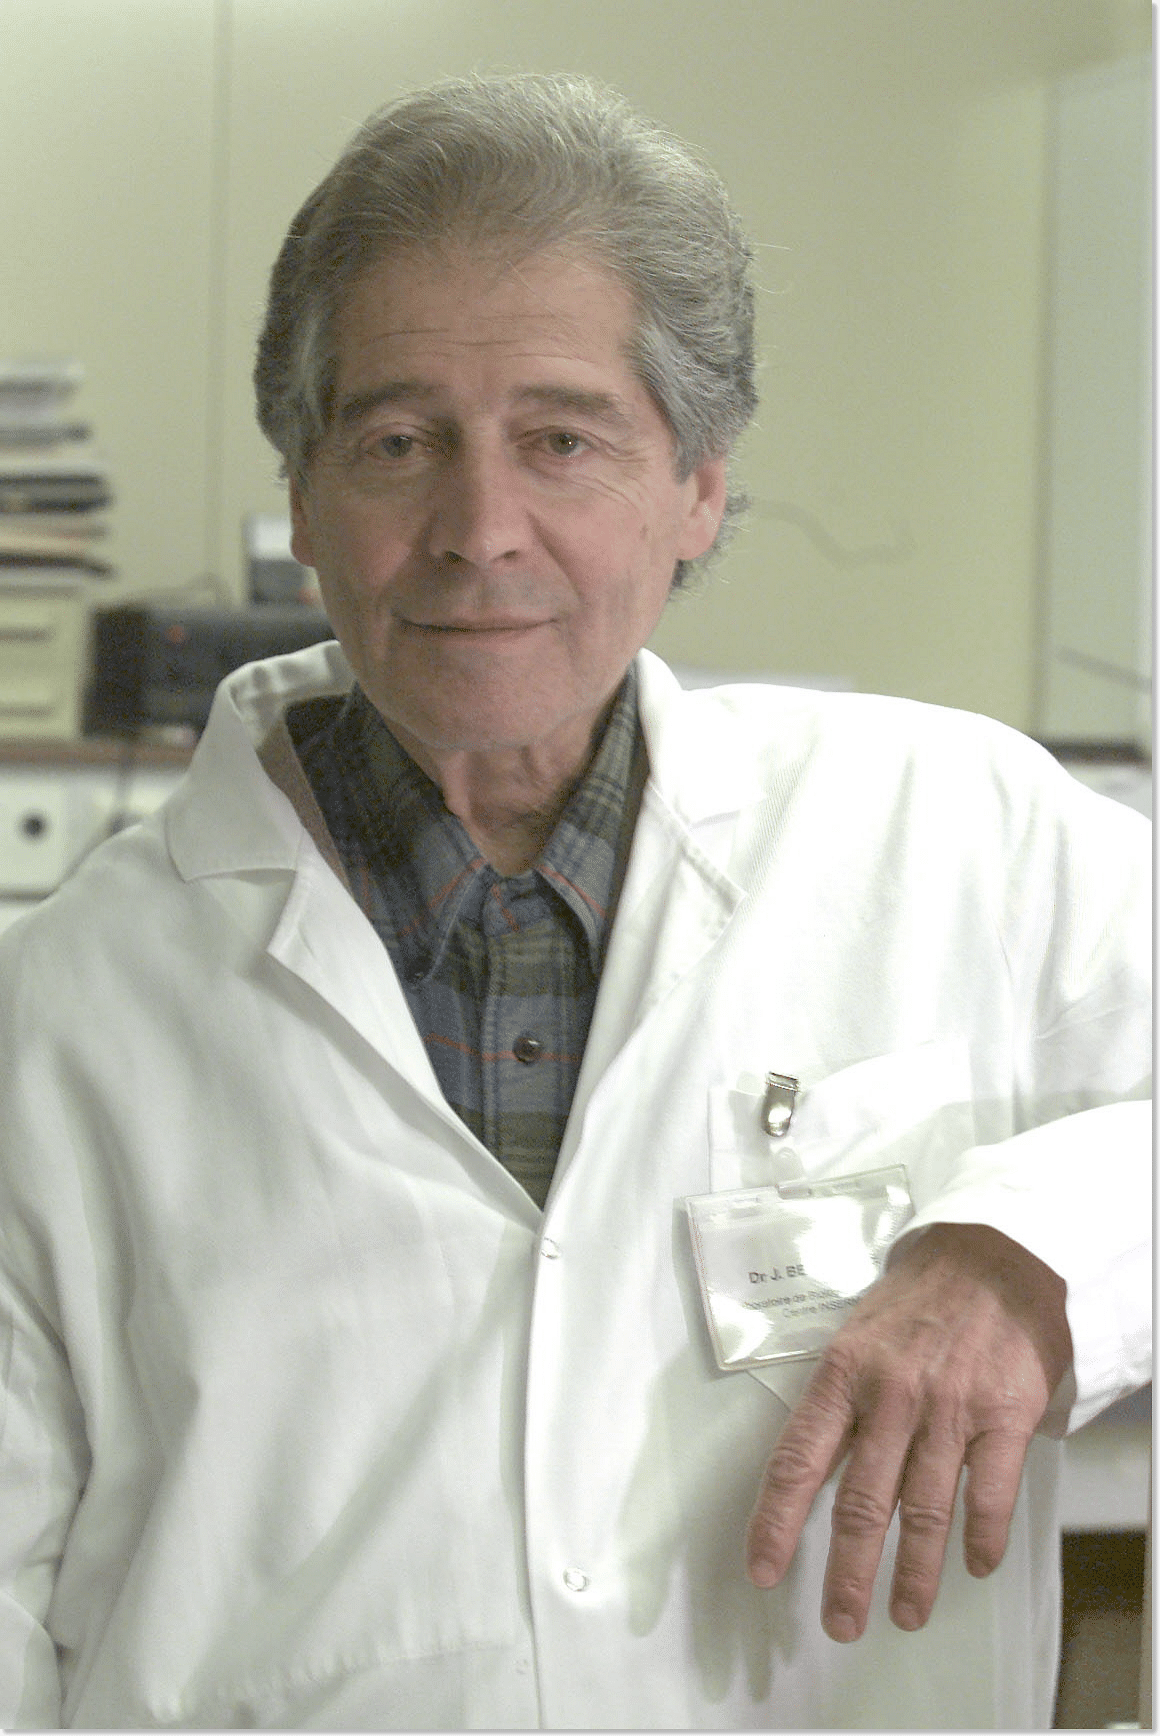 Jacques Benveniste's research in 1988 which vindicated homeopathy by chance created a stir back then. It was Benveniste who coined the term 'memory of water'